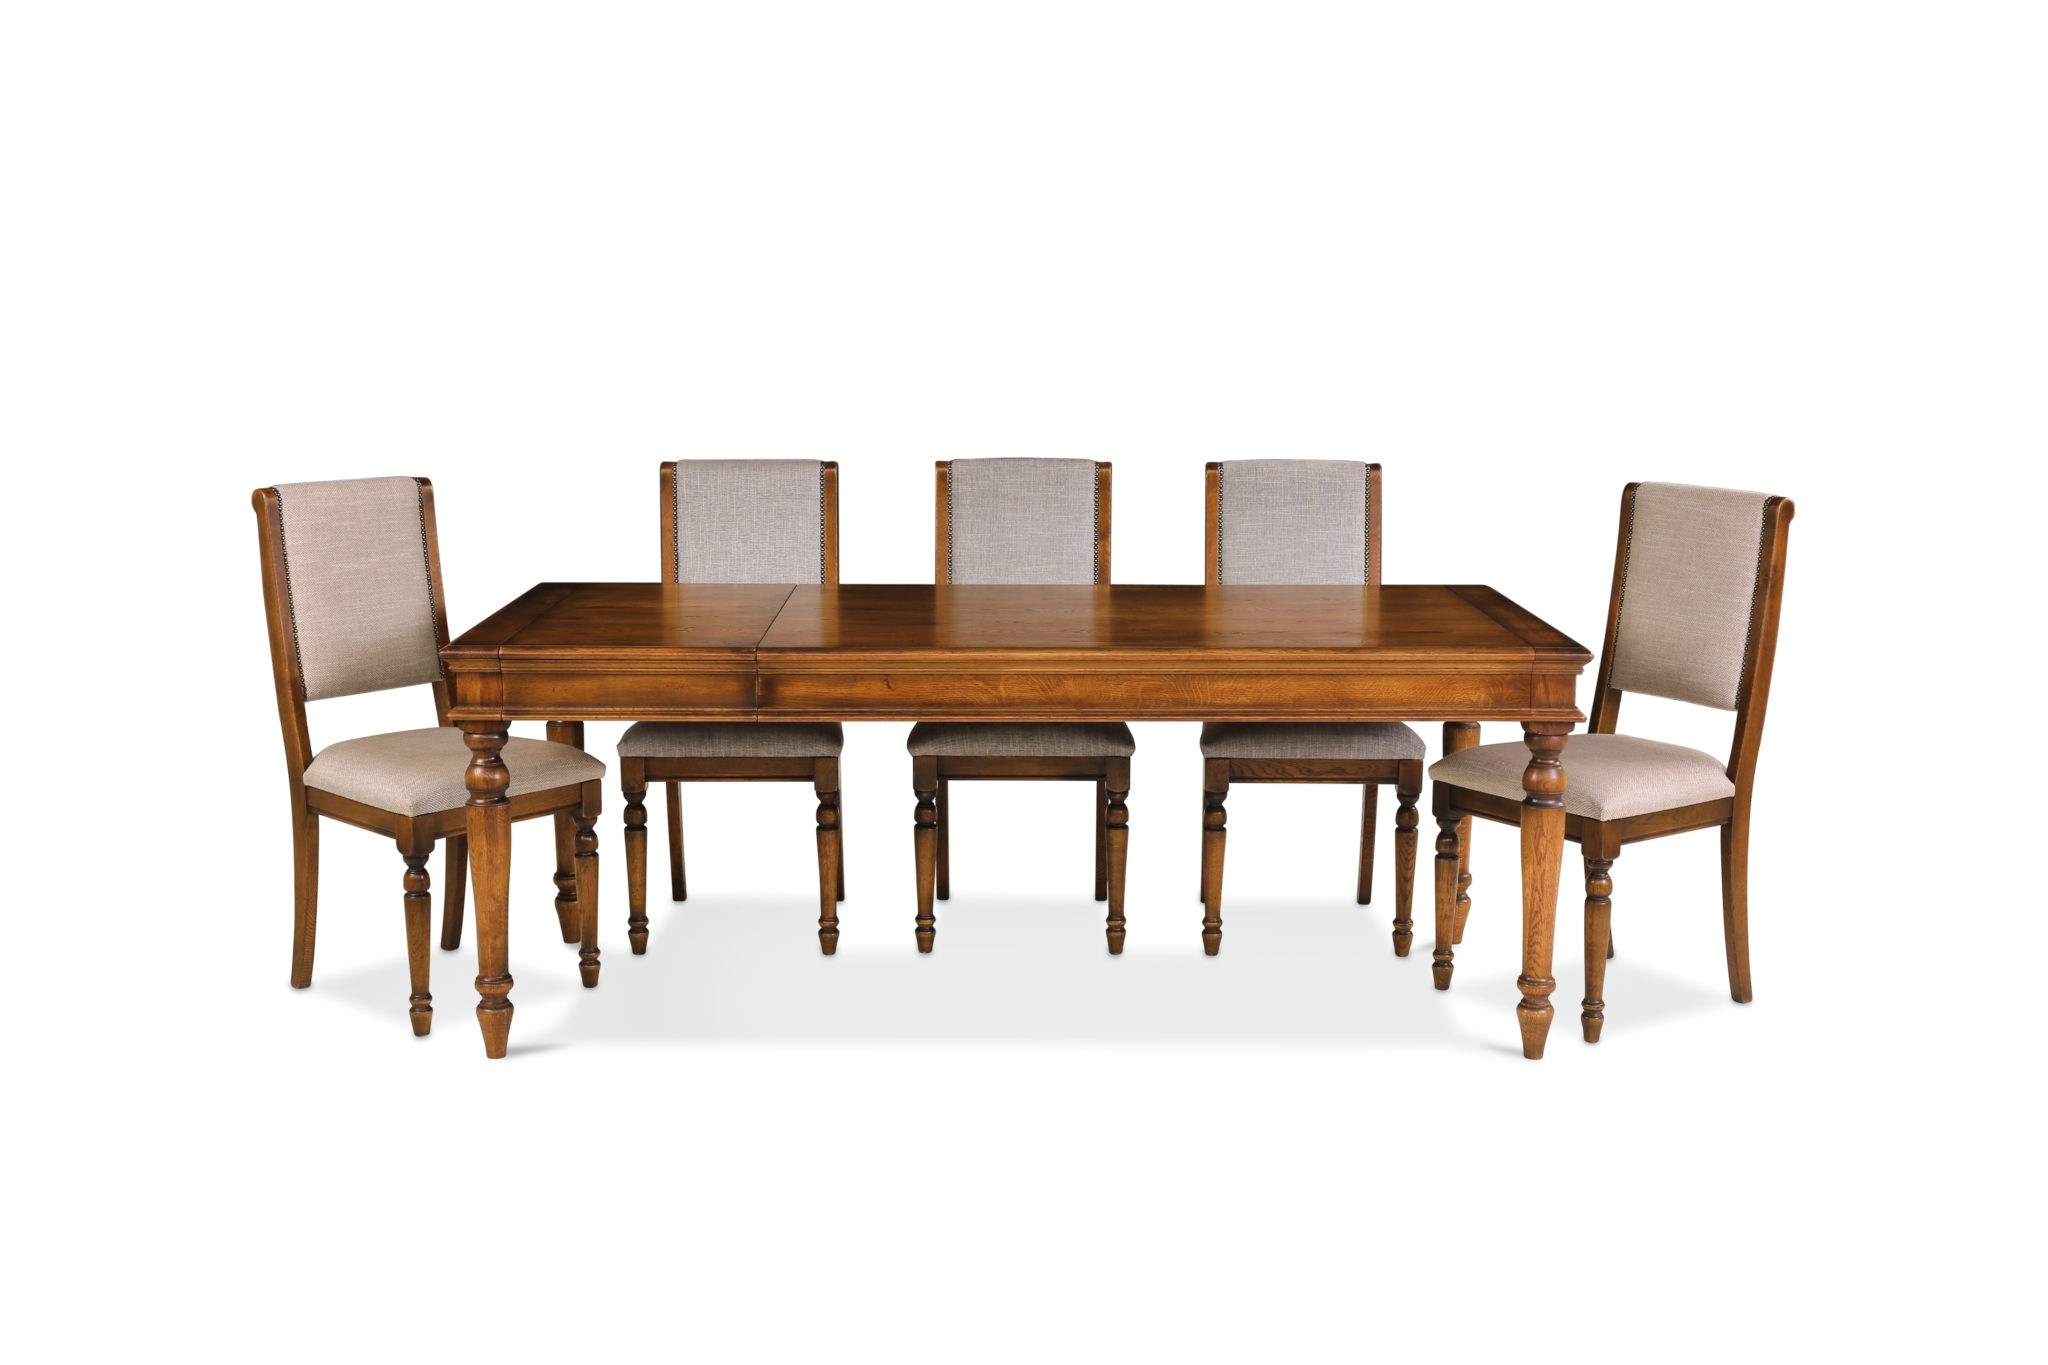 Rochford 5ft Extending Dining Table and Six Chairs - Fahenshaw